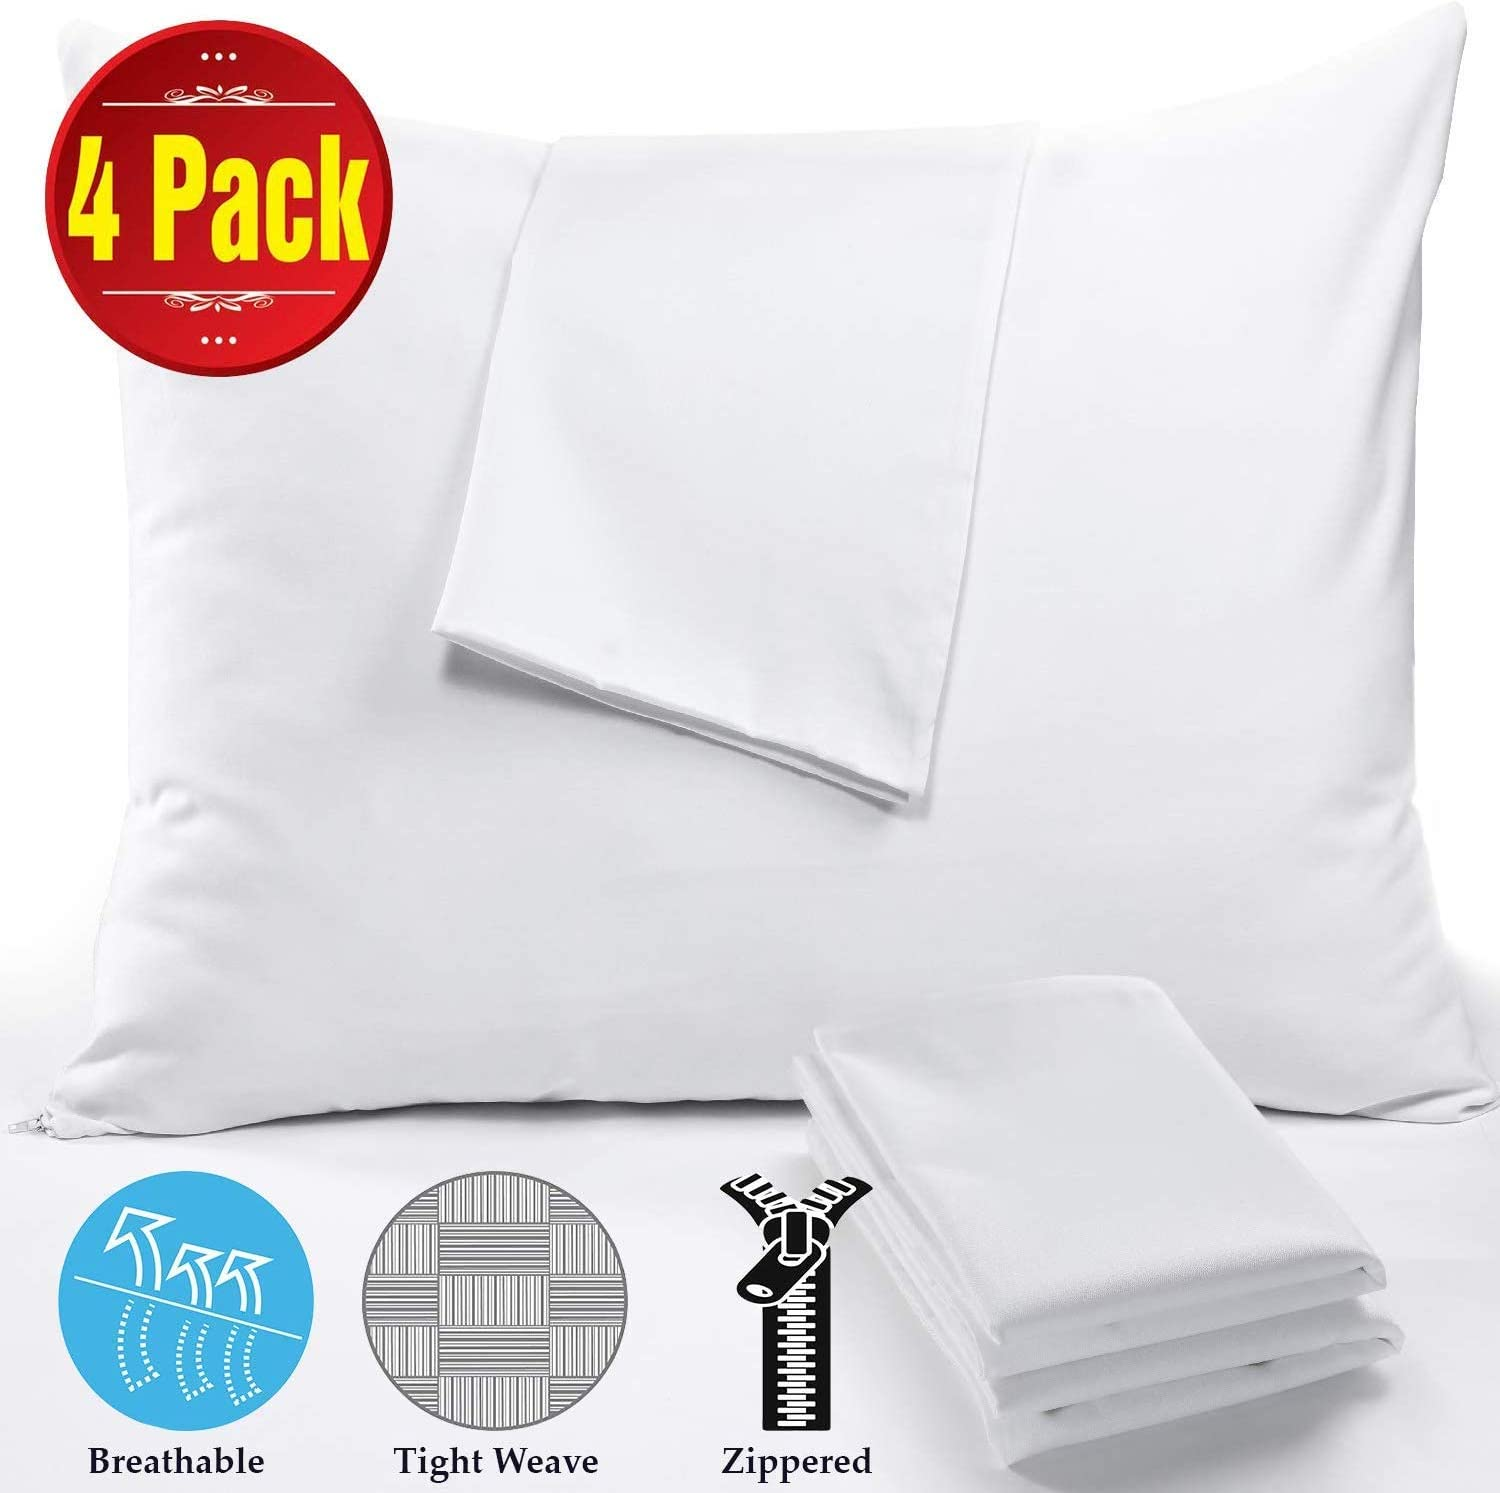 """4Pack 100% Cotton Pillow Protectors Standard Anti Allergy 20x26"""" 450 Thread Count Style ❤ Life Time Replacement❤ Premium Cotton Sateen Tight Weave Lab Tested Non Noisy Zippered Covers Breathable"""